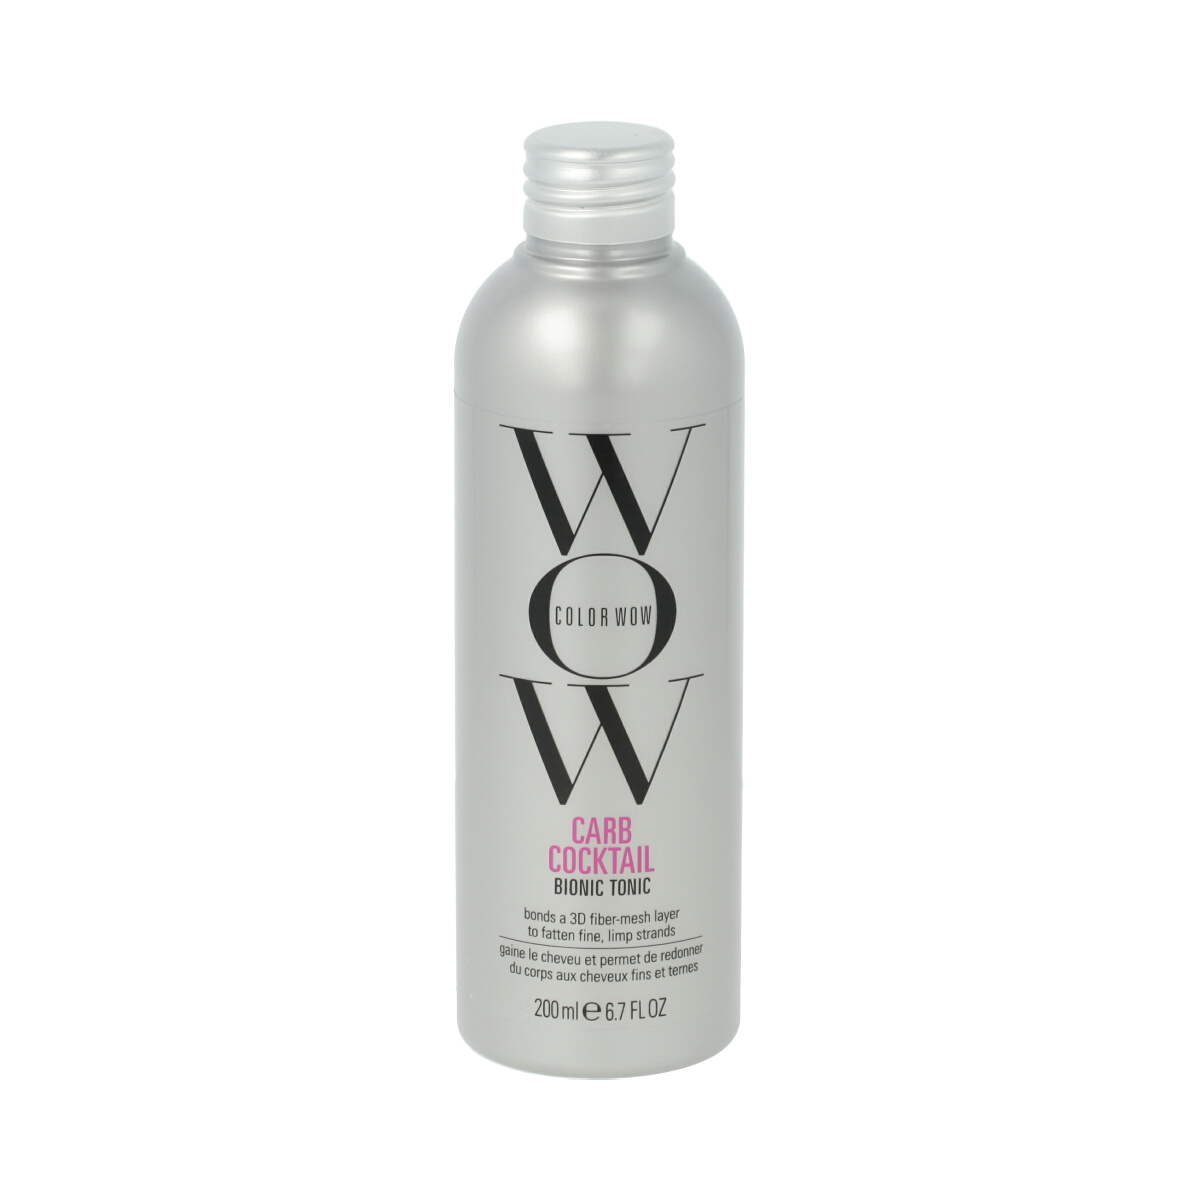 Color Wow Carb Cocktail Bionic Tonic 200 ml 16193